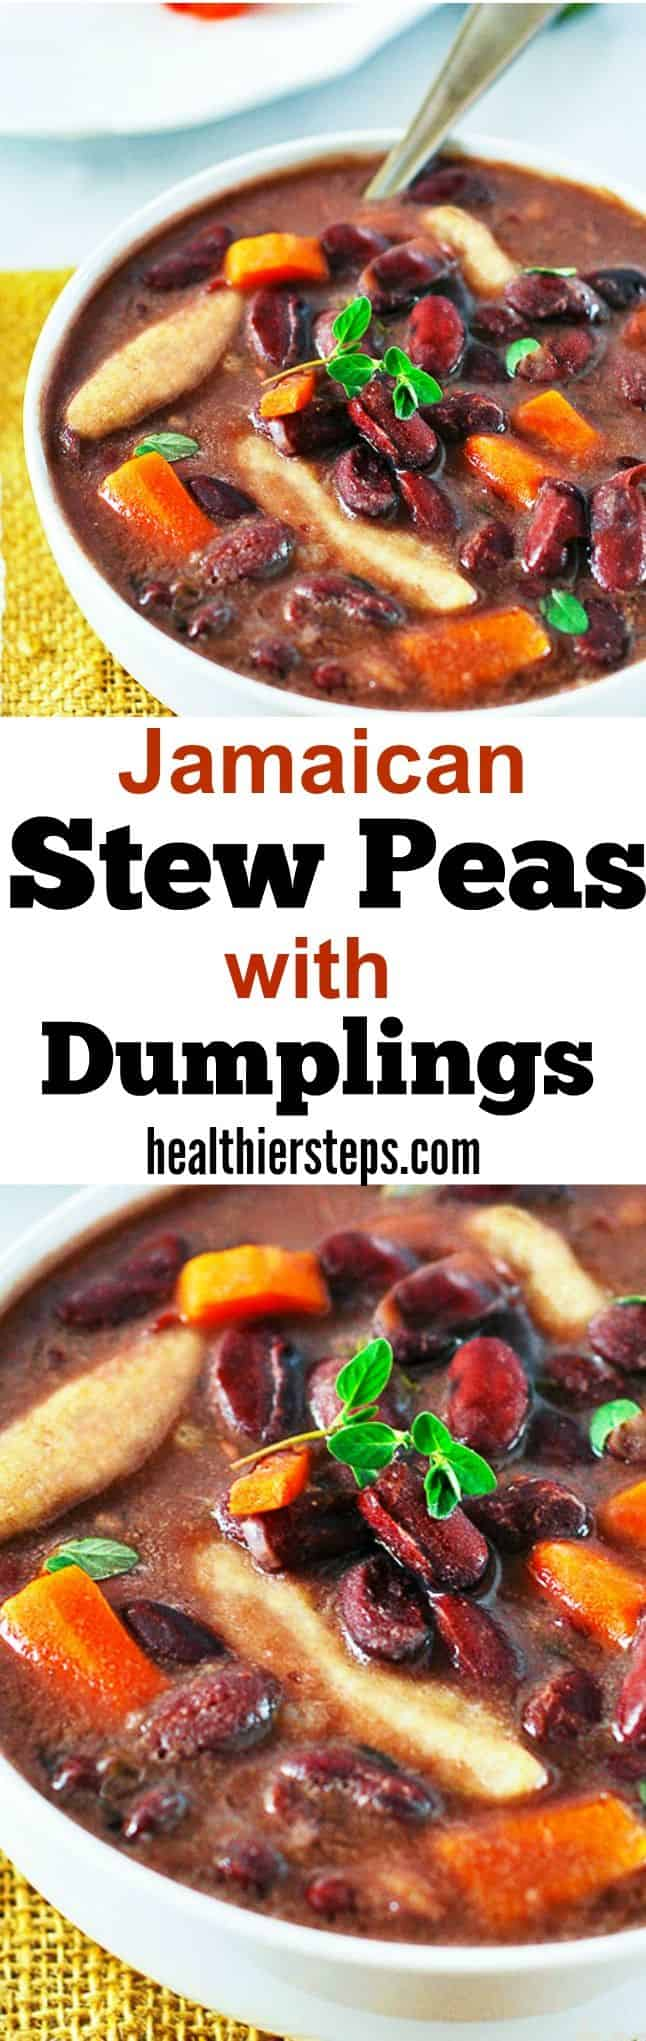 Jamaican Stew Peas with Dumplings